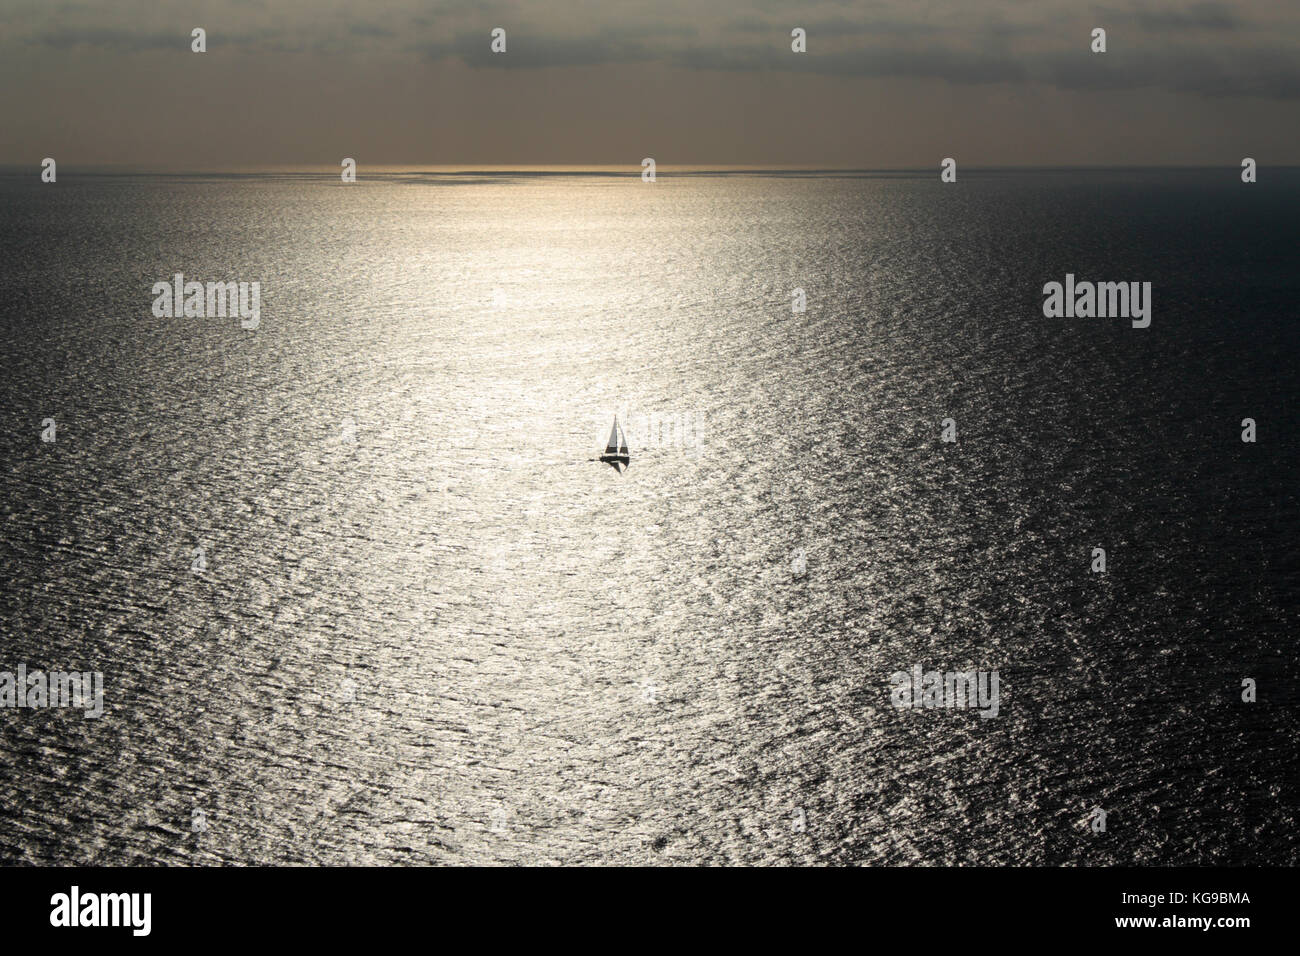 solitary-sailing-boat-caught-in-the-suns